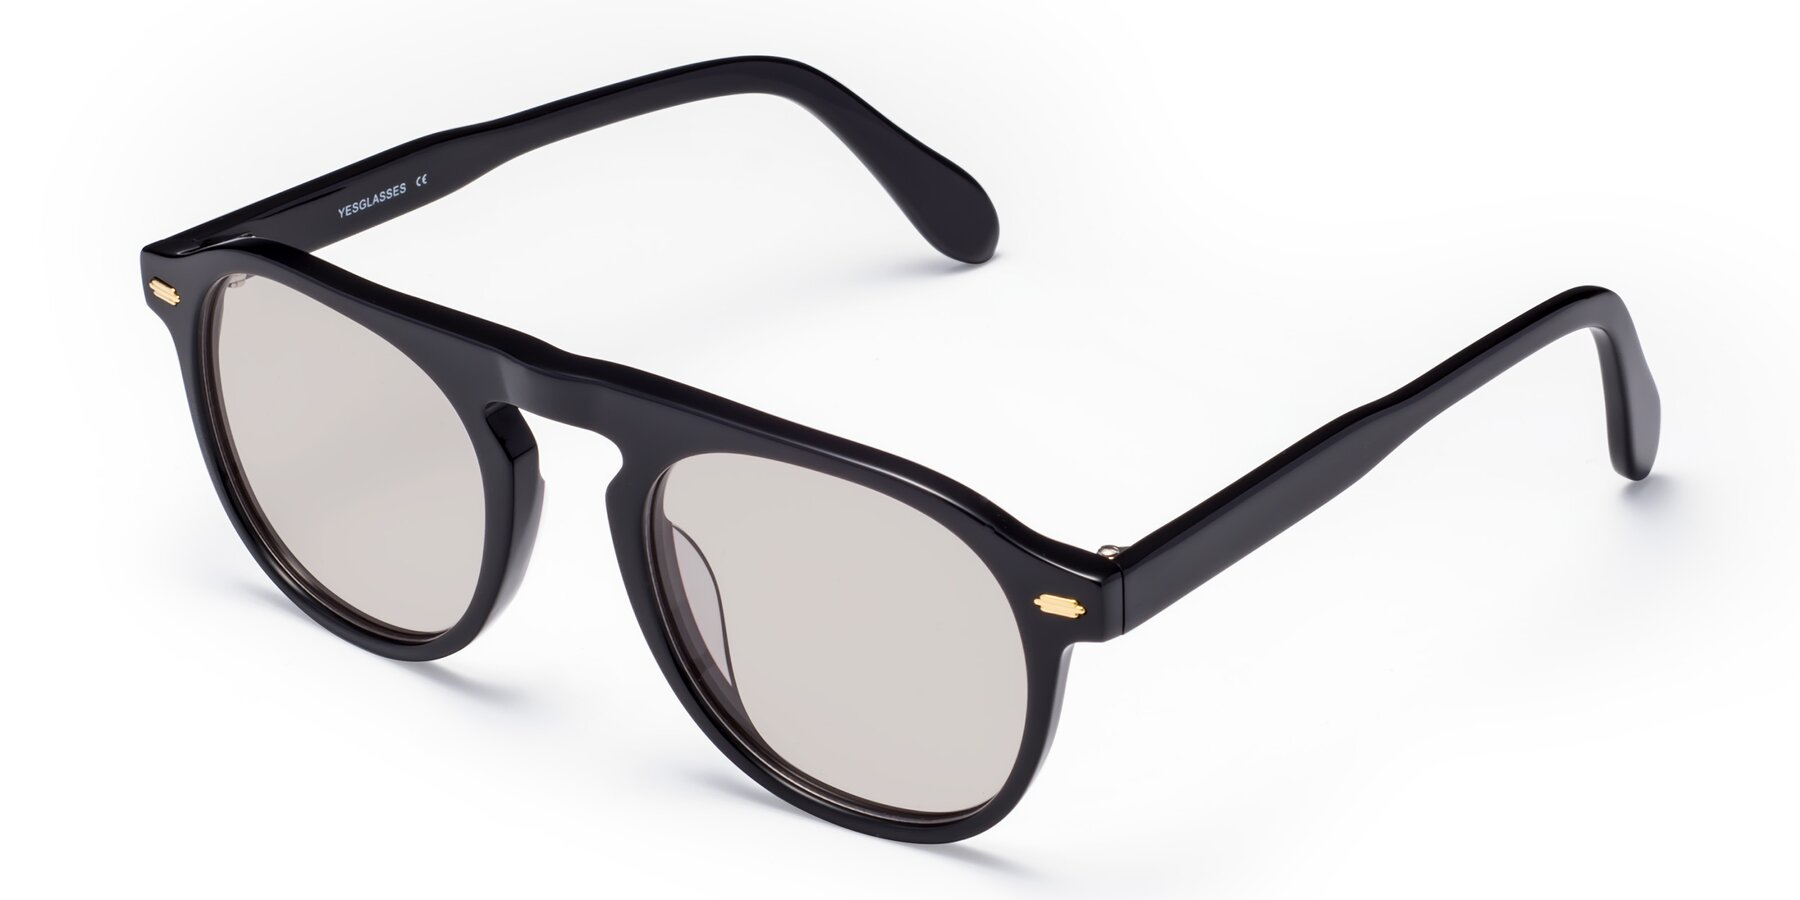 Angle of Mufasa in Black with Light Brown Tinted Lenses